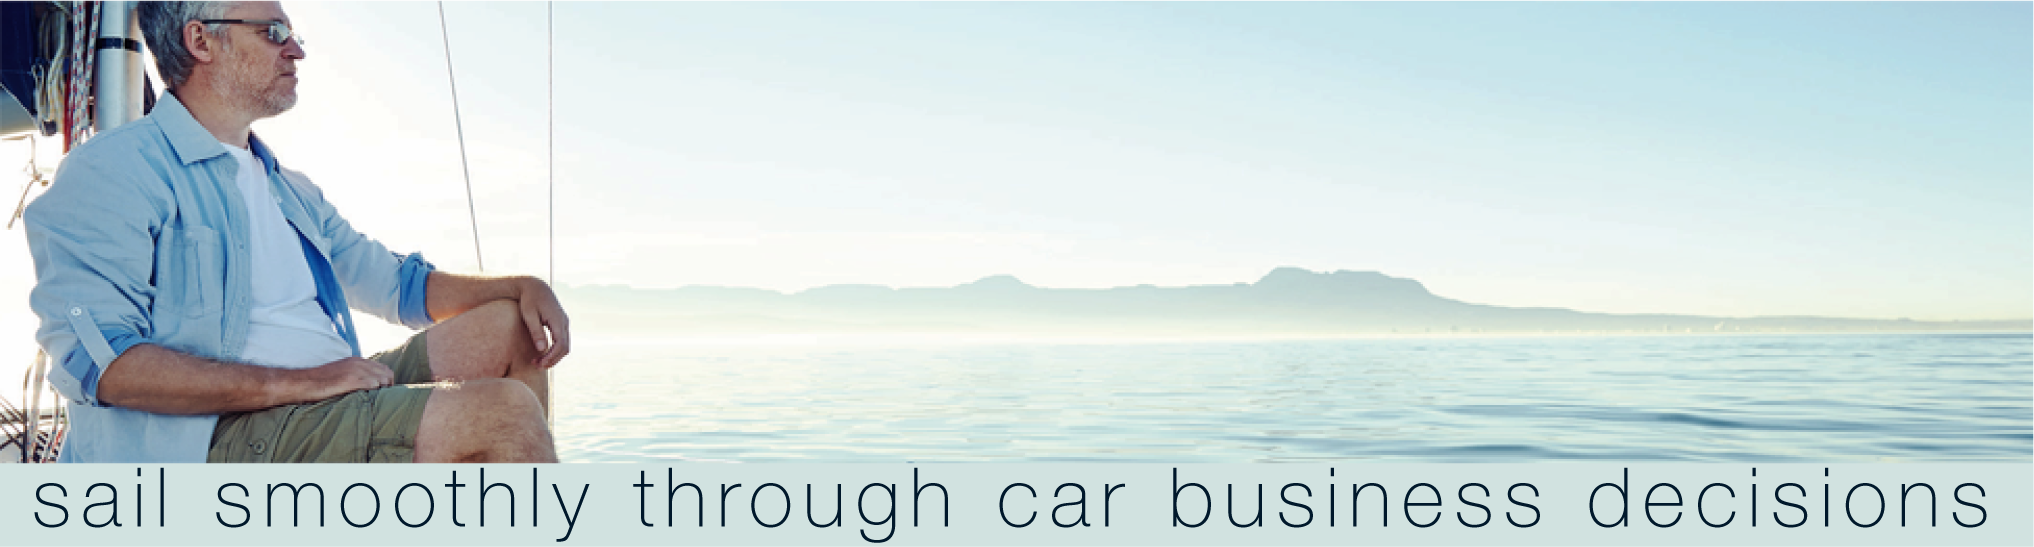 Banner: Sale smoothly through car business decisions